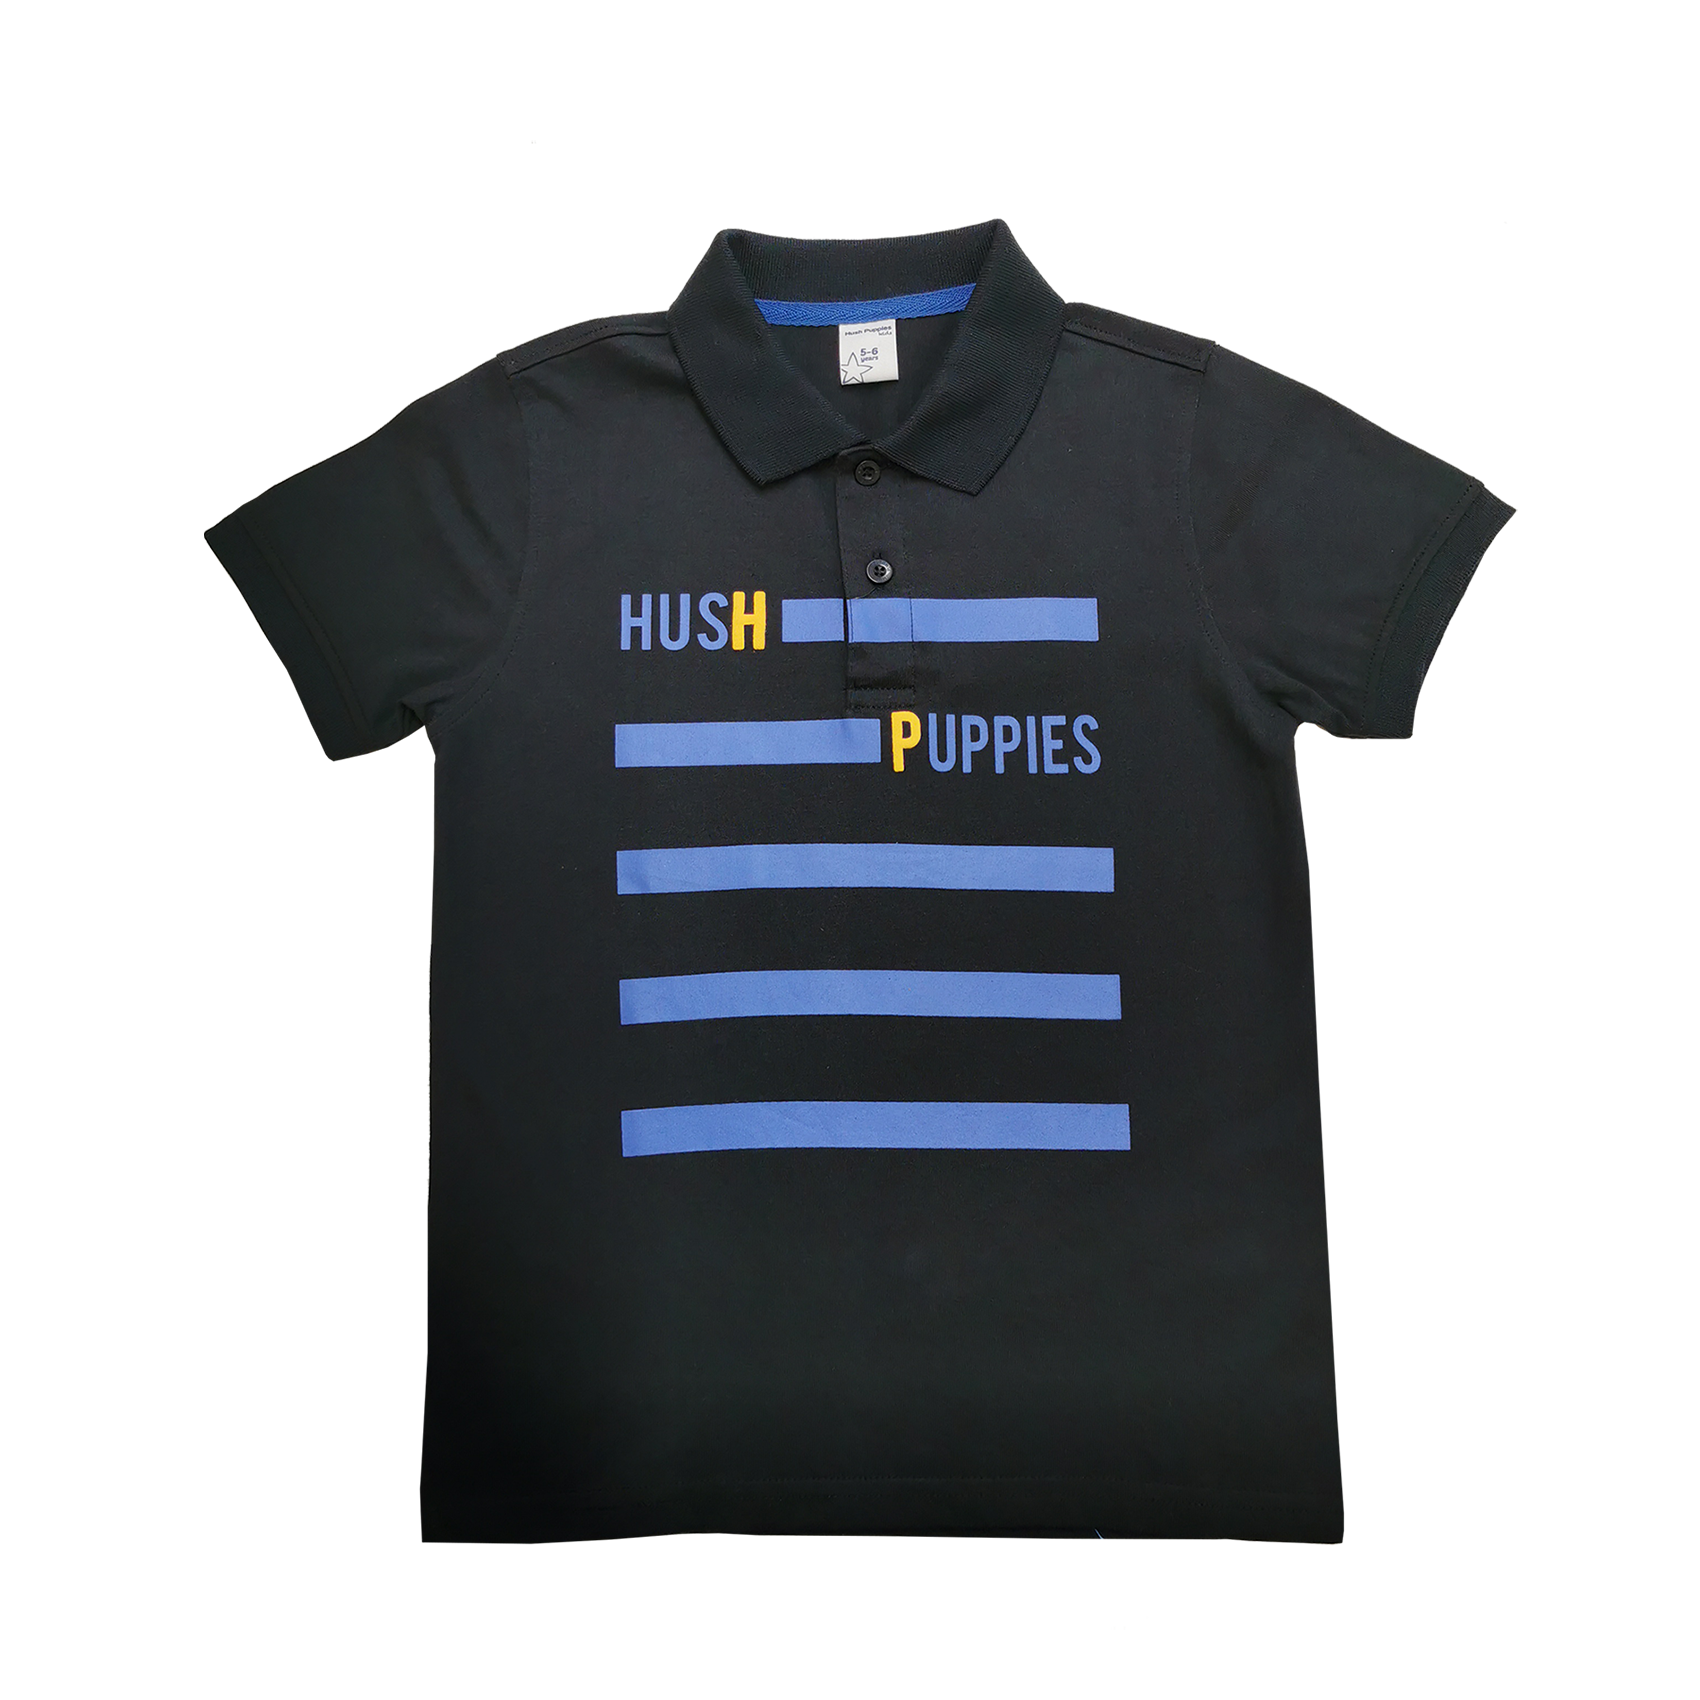 Hush Puppies Ryker Boy Polo With Graphic Print  HBP039357